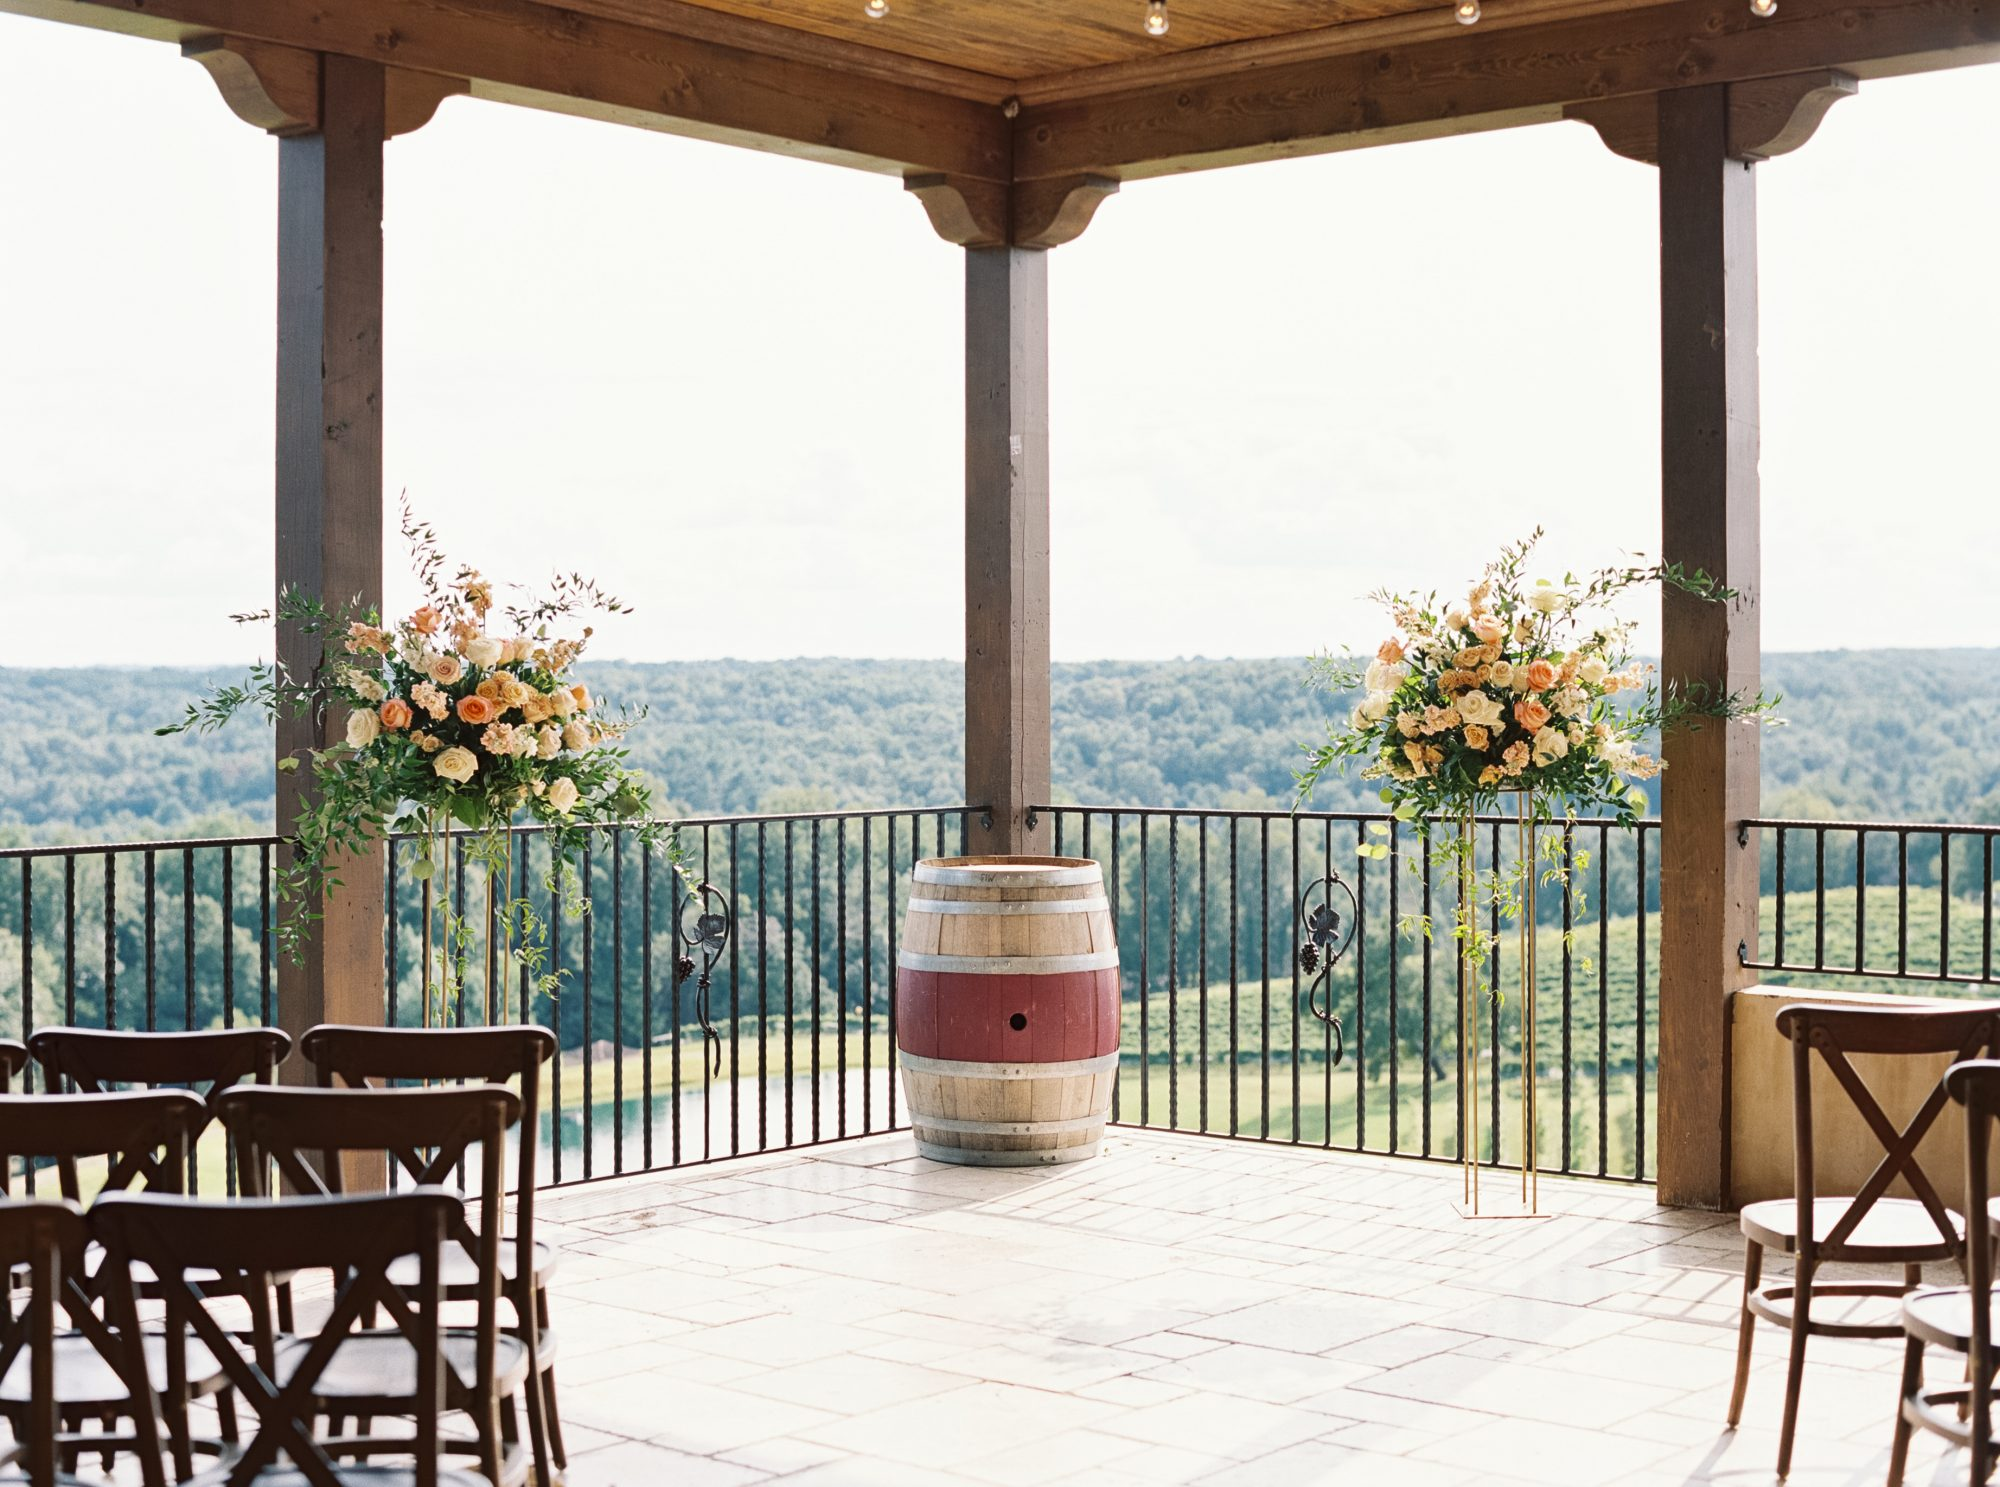 cayla david wedding venue outdoor terrace with views of the winery's vineyard